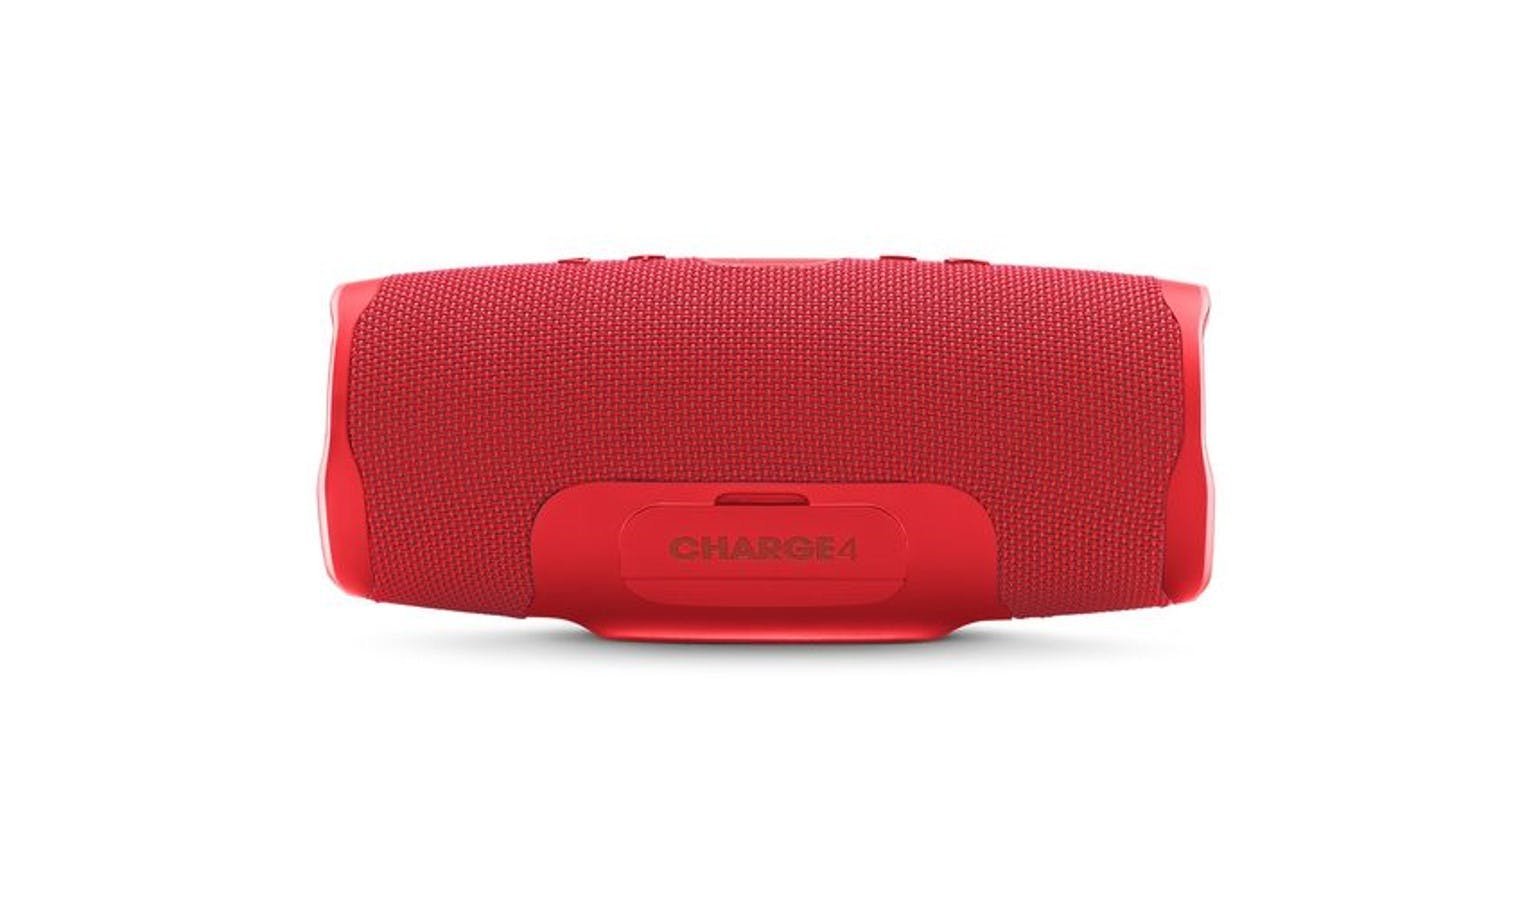 JBL Charger 4 Portable Bluetooth Speaker - Red